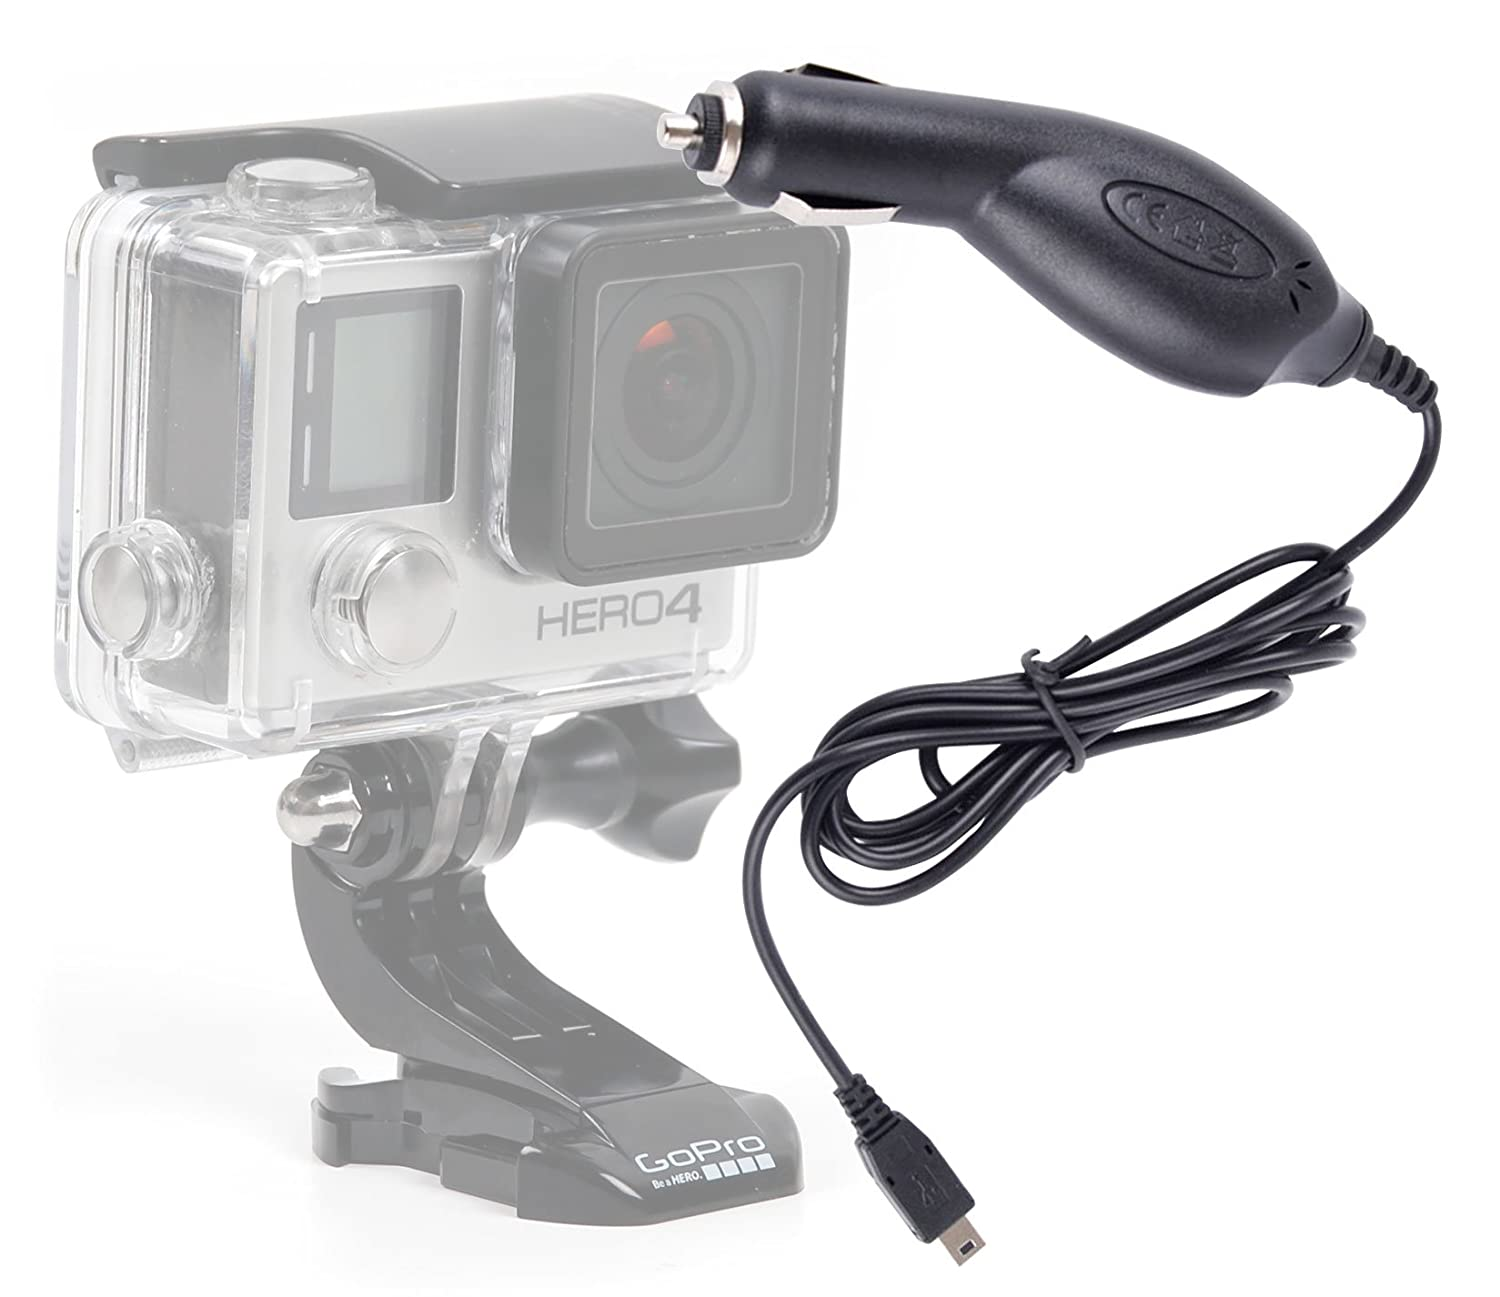 f72575df2be DURAGADGET Cargador Mechero Coche Para Cámara GoPro Hero 4/3+ / 3/2 / 1 ( Black, Silver and White Edition): Amazon.es: Electrónica